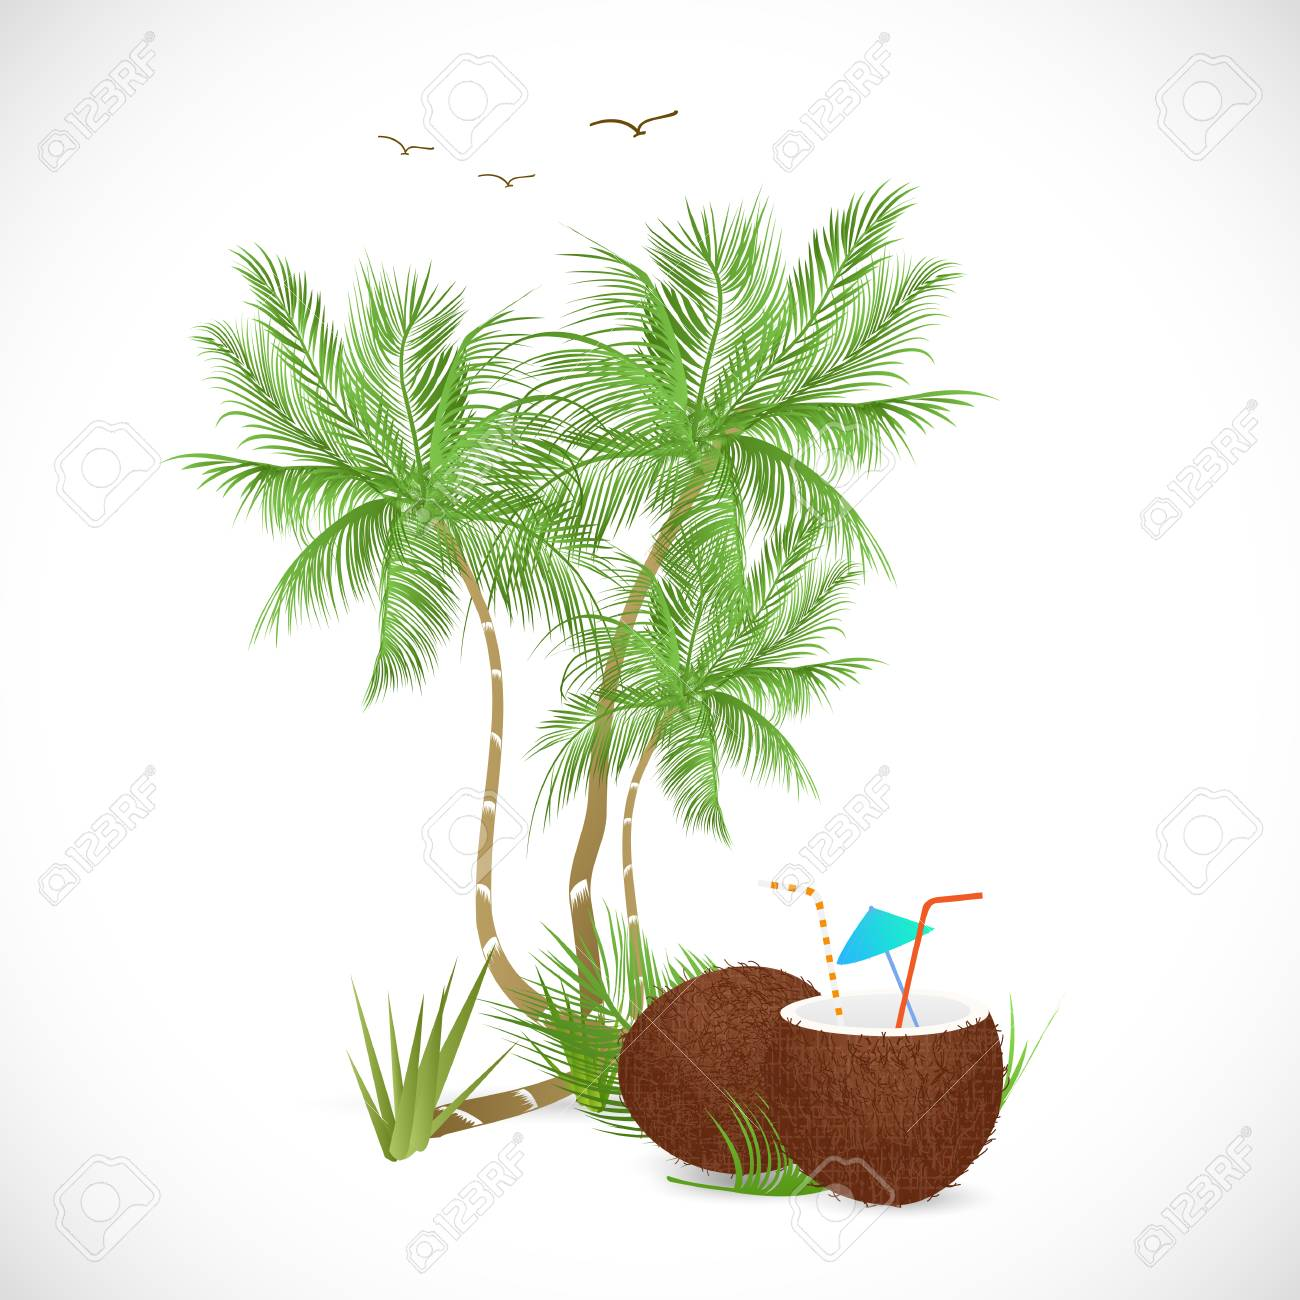 Illustration of a coconut drink and palm trees isolated on a white background. - 97016254